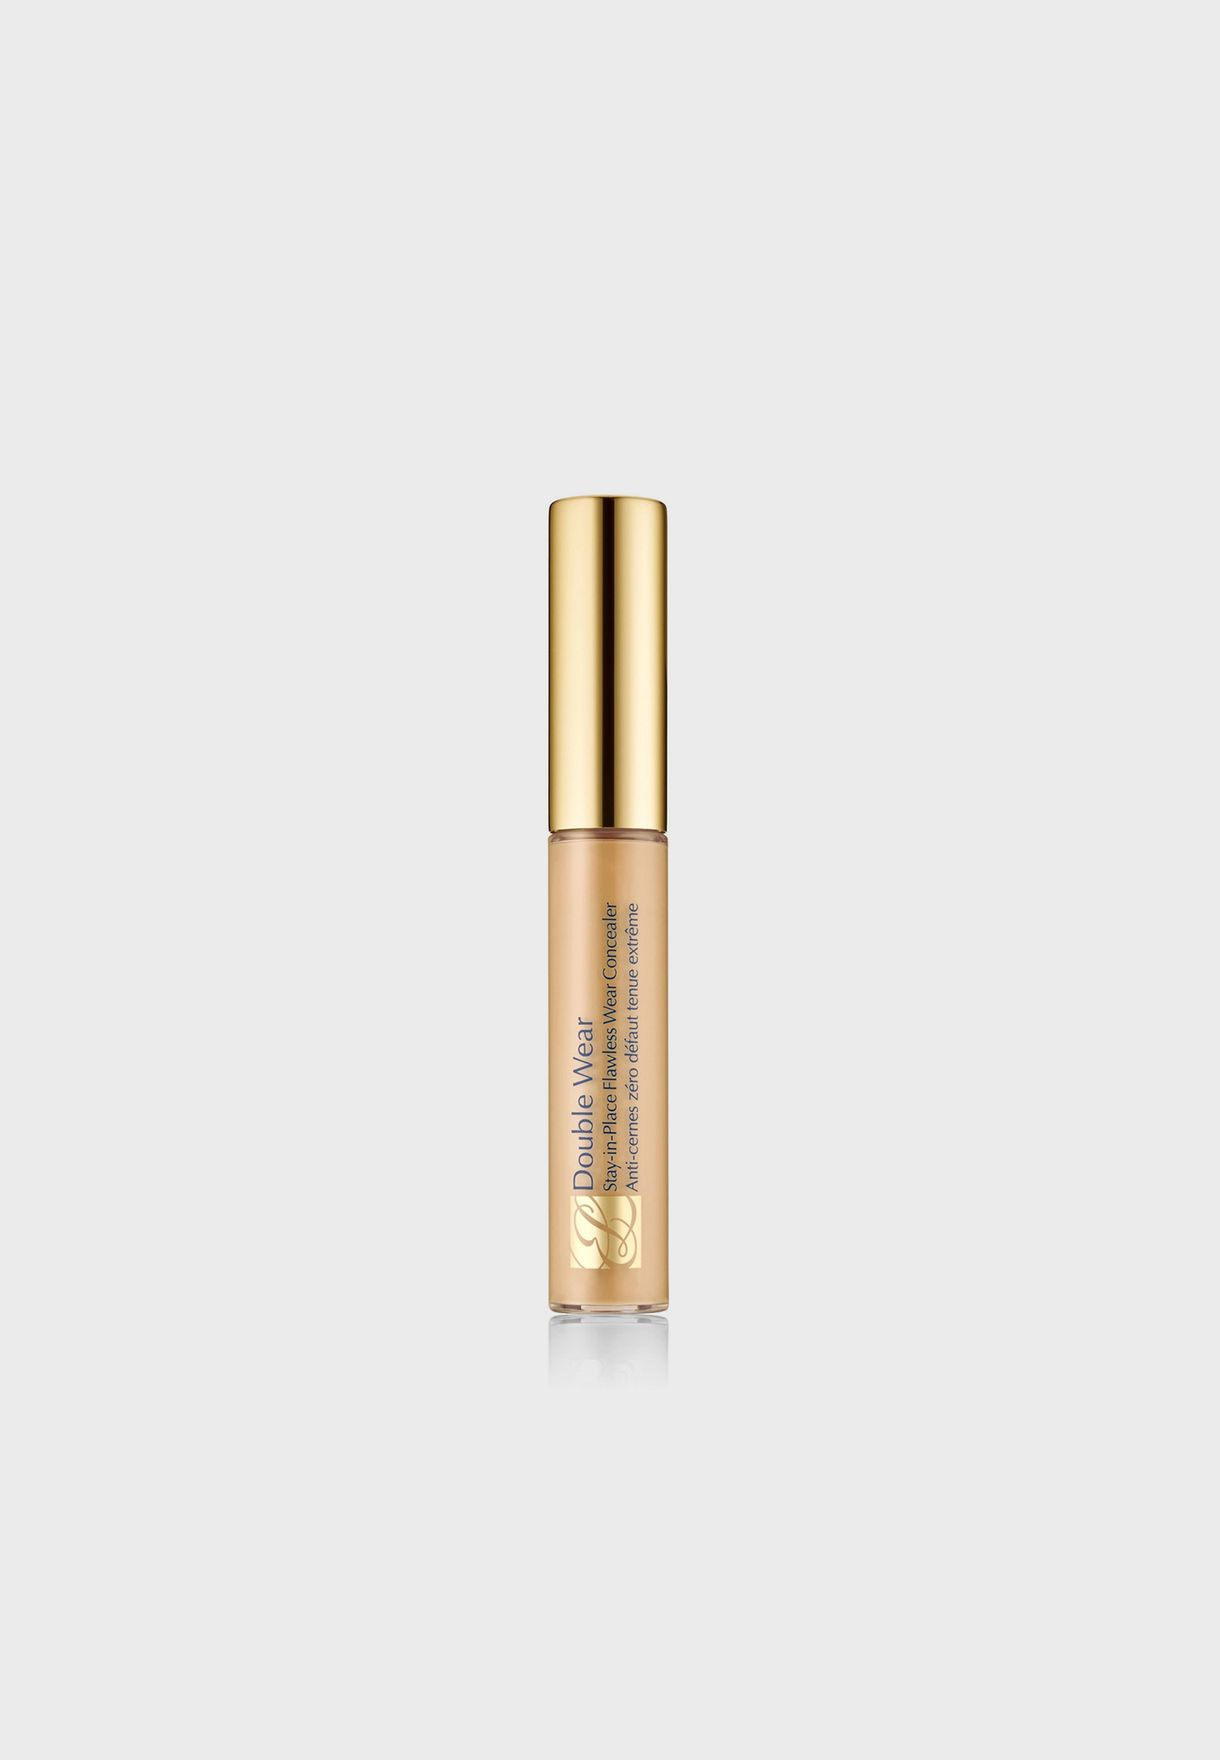 Double Wear Stay-In-Place Flawless Wear Concealer (Light Warm)